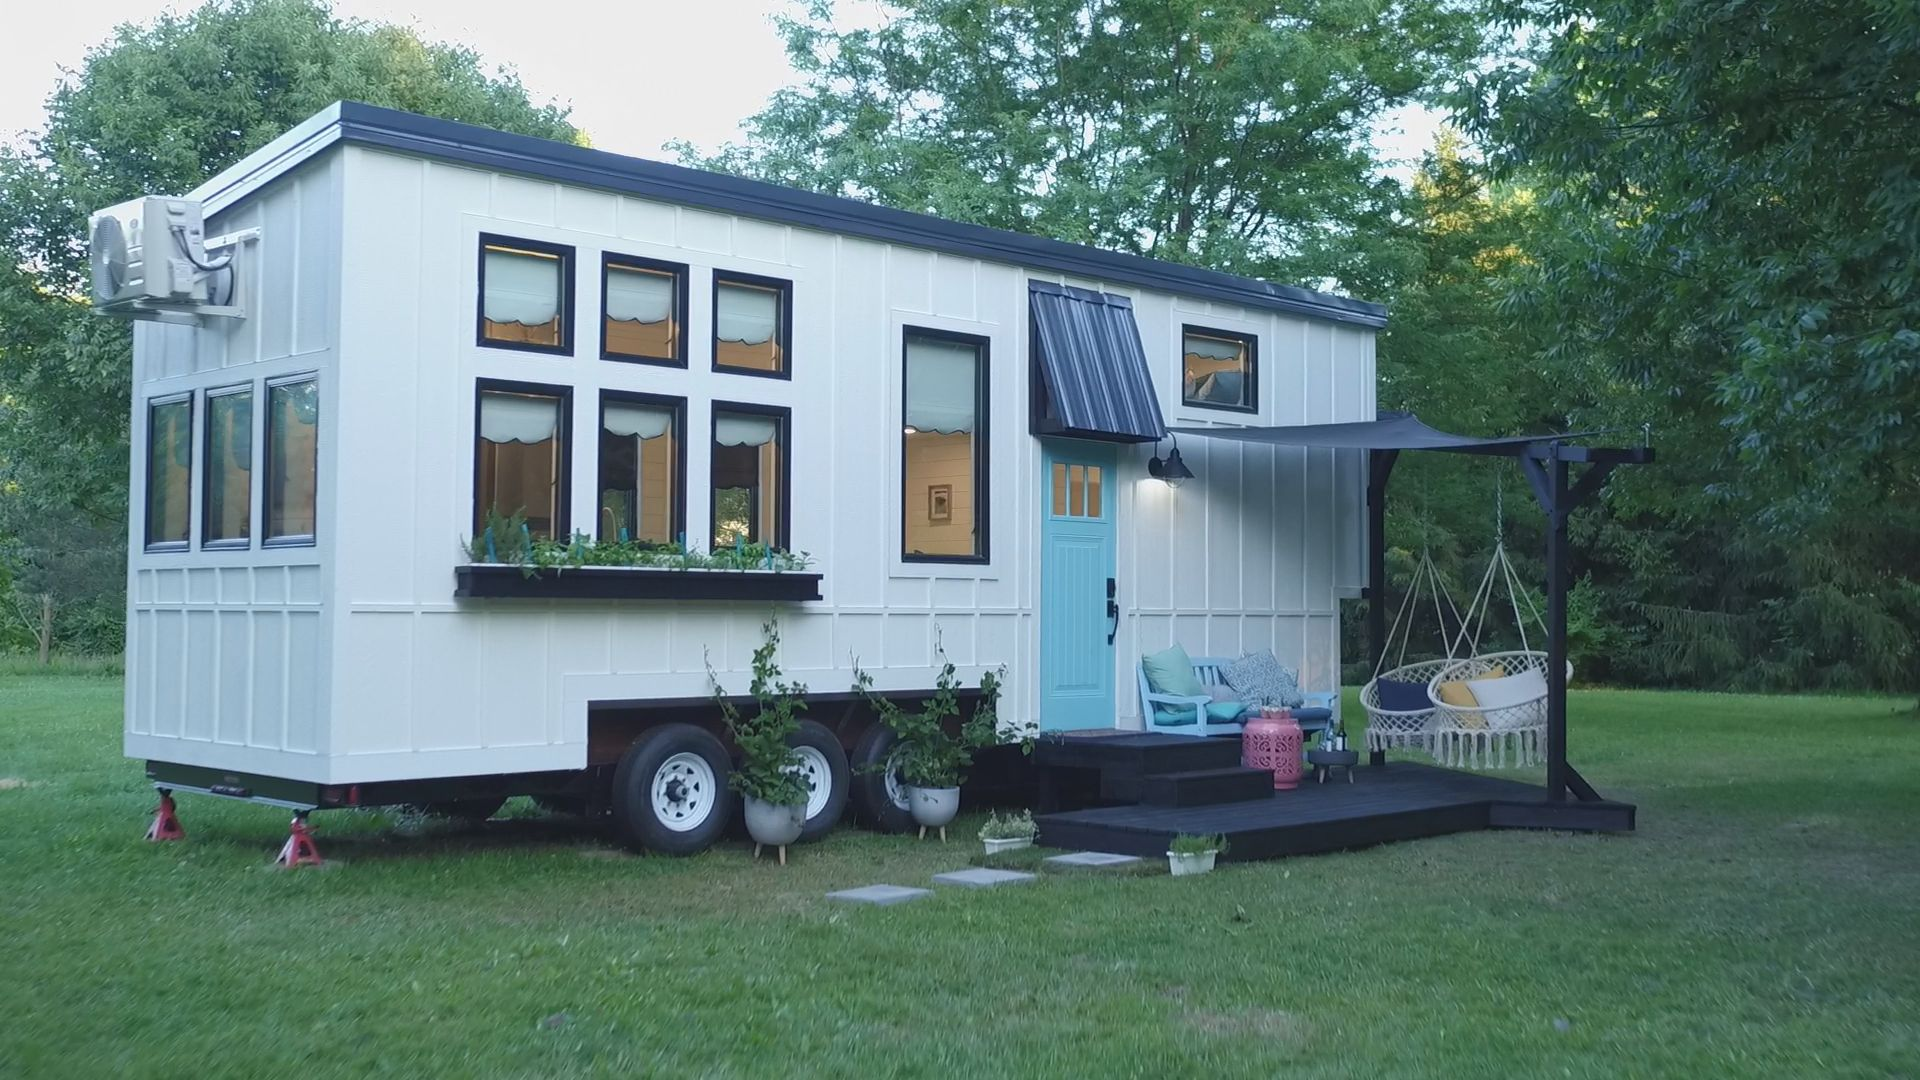 Zionsville Father And Daughter Featured On Tiny House